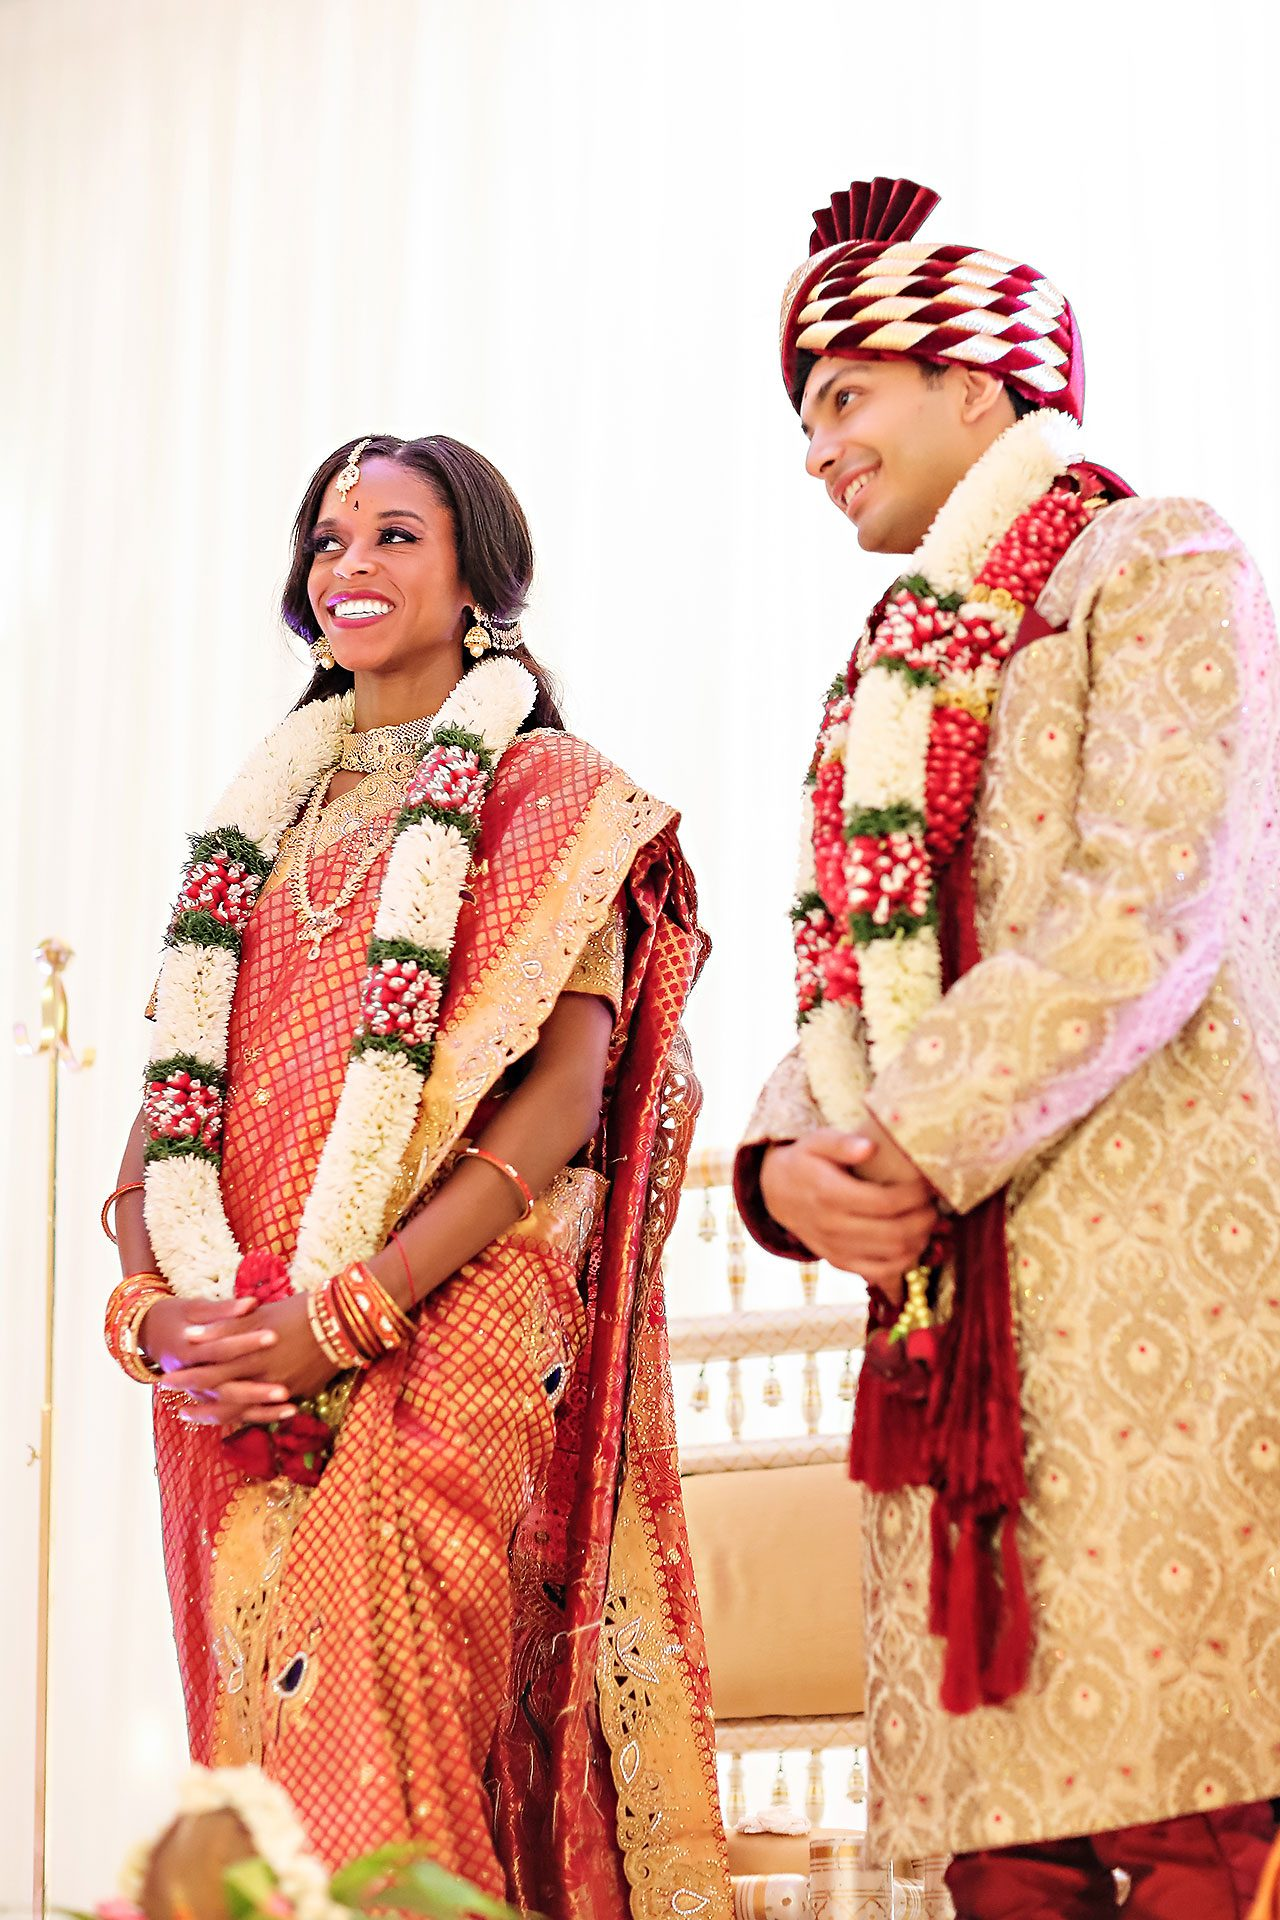 Joie Nikhil JW Marriott Indian Wedding 254